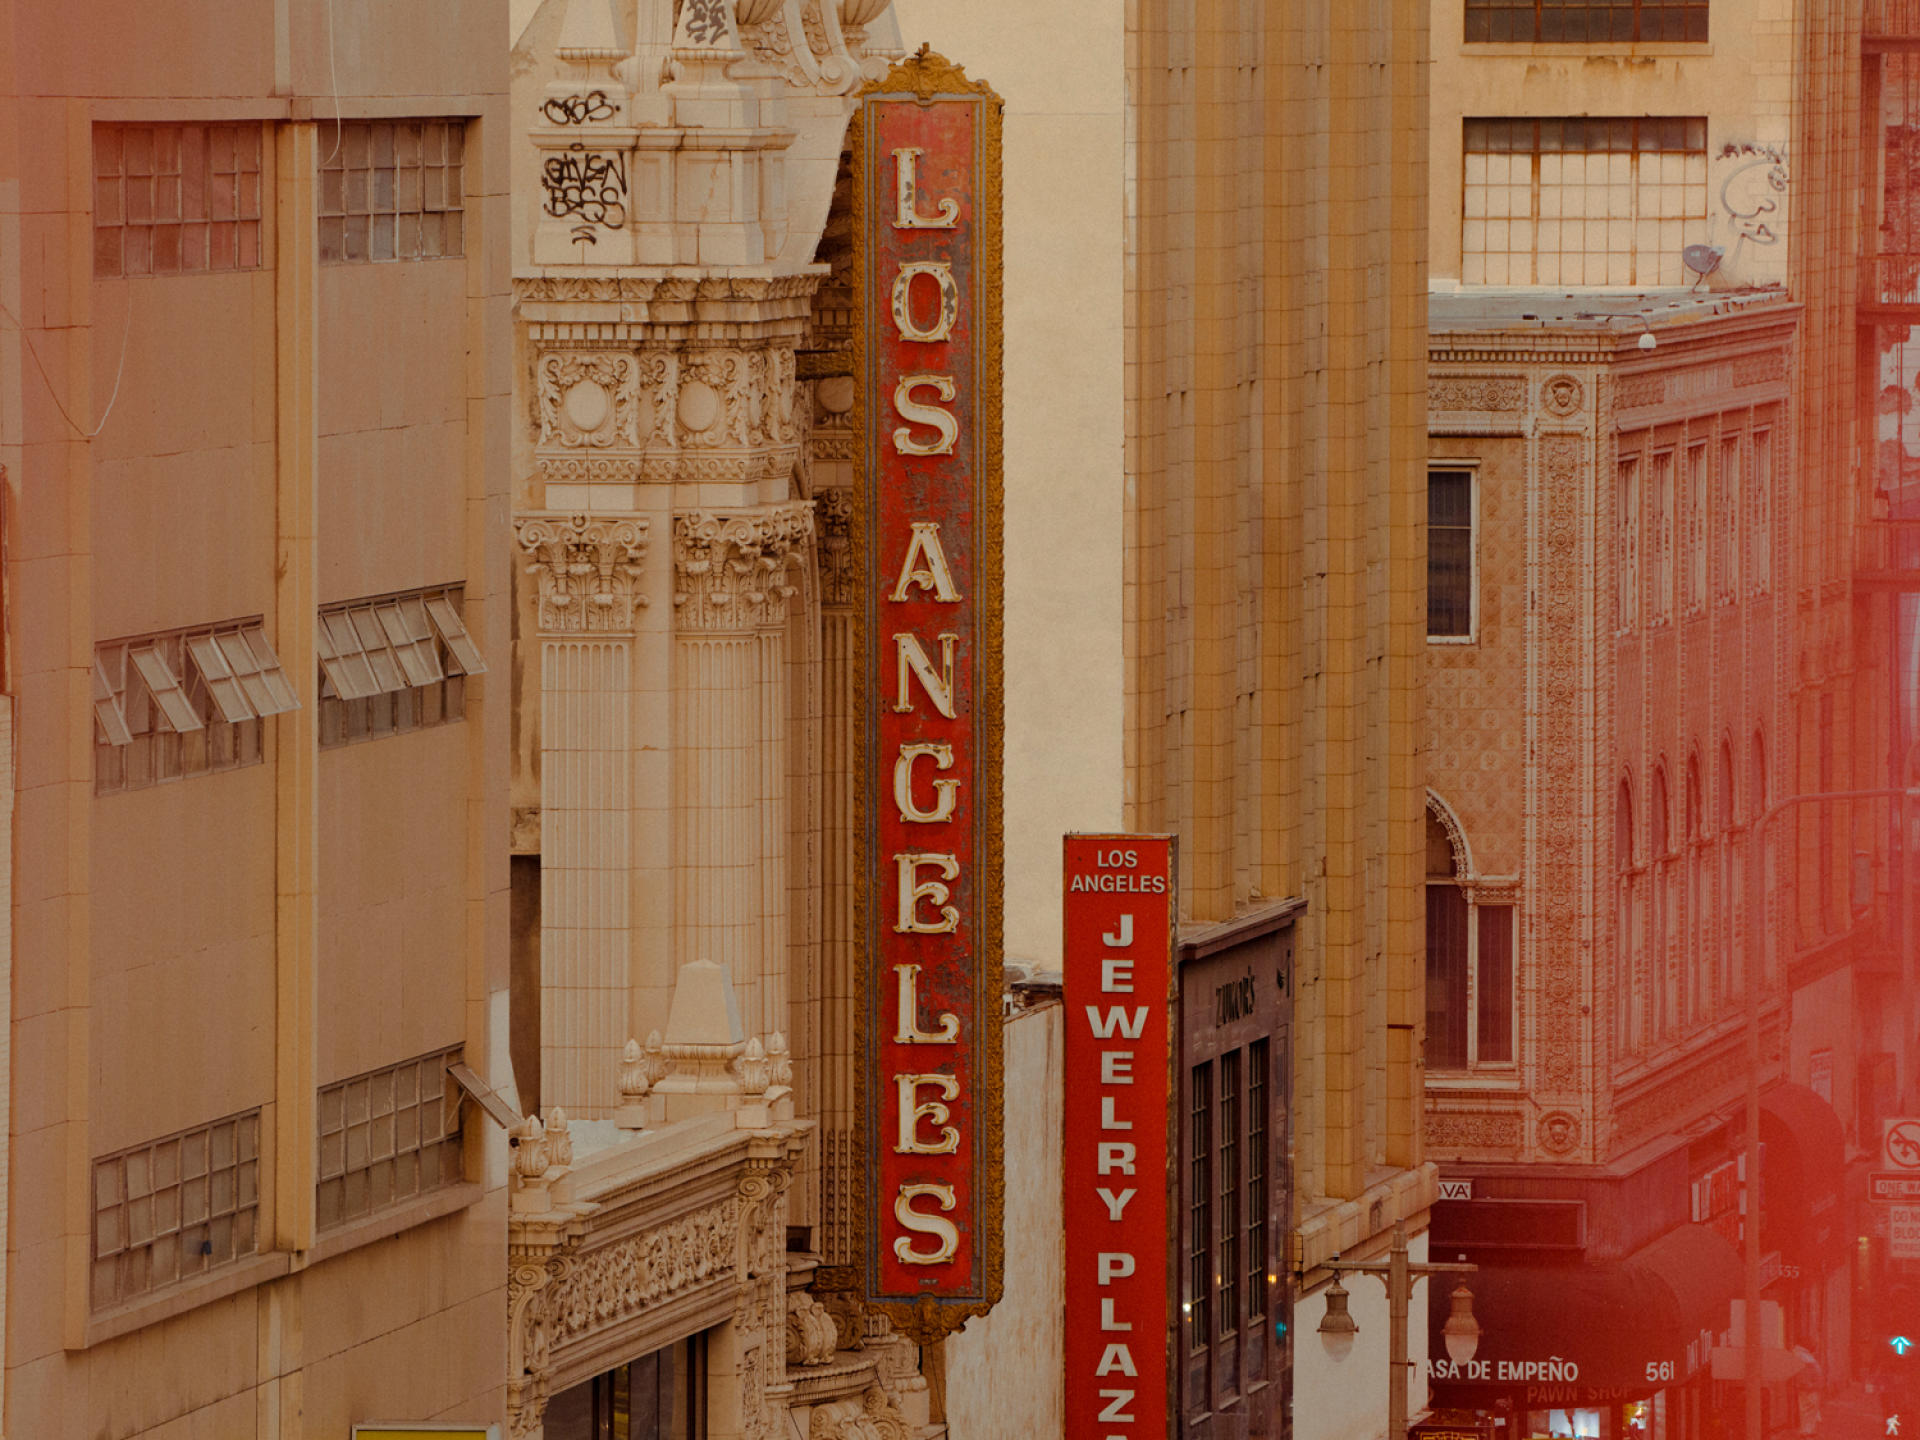 Le Los Angeles Theatre, un cinéma construit en 1931.